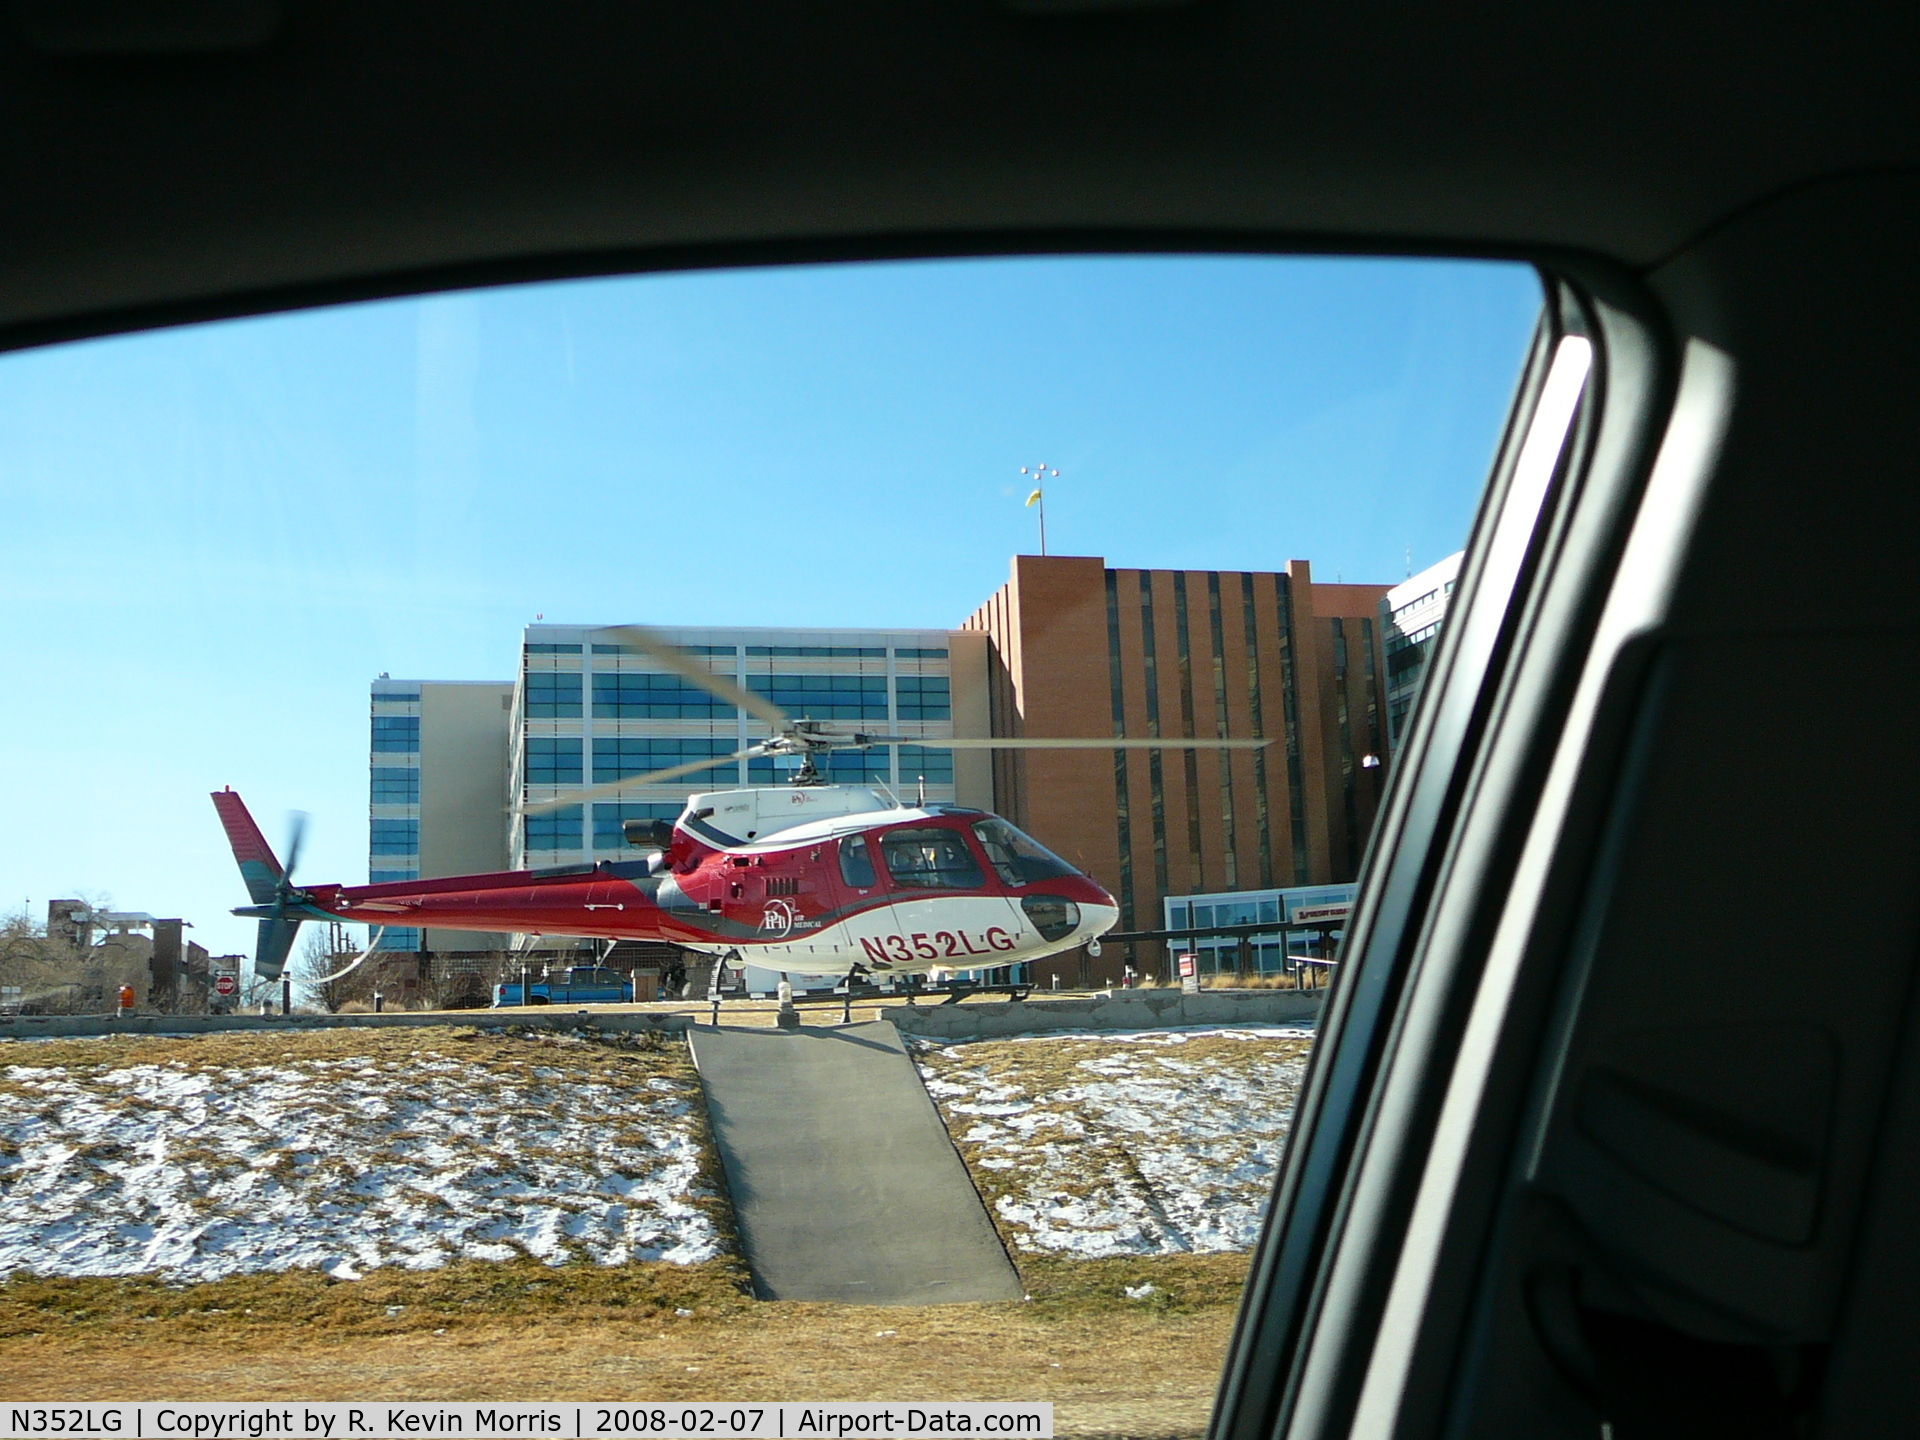 N352LG, Eurocopter AS-350B-3 Ecureuil C/N 3777, Medical Helicopter at Albuquerque, NM Hospital - ready for departure.